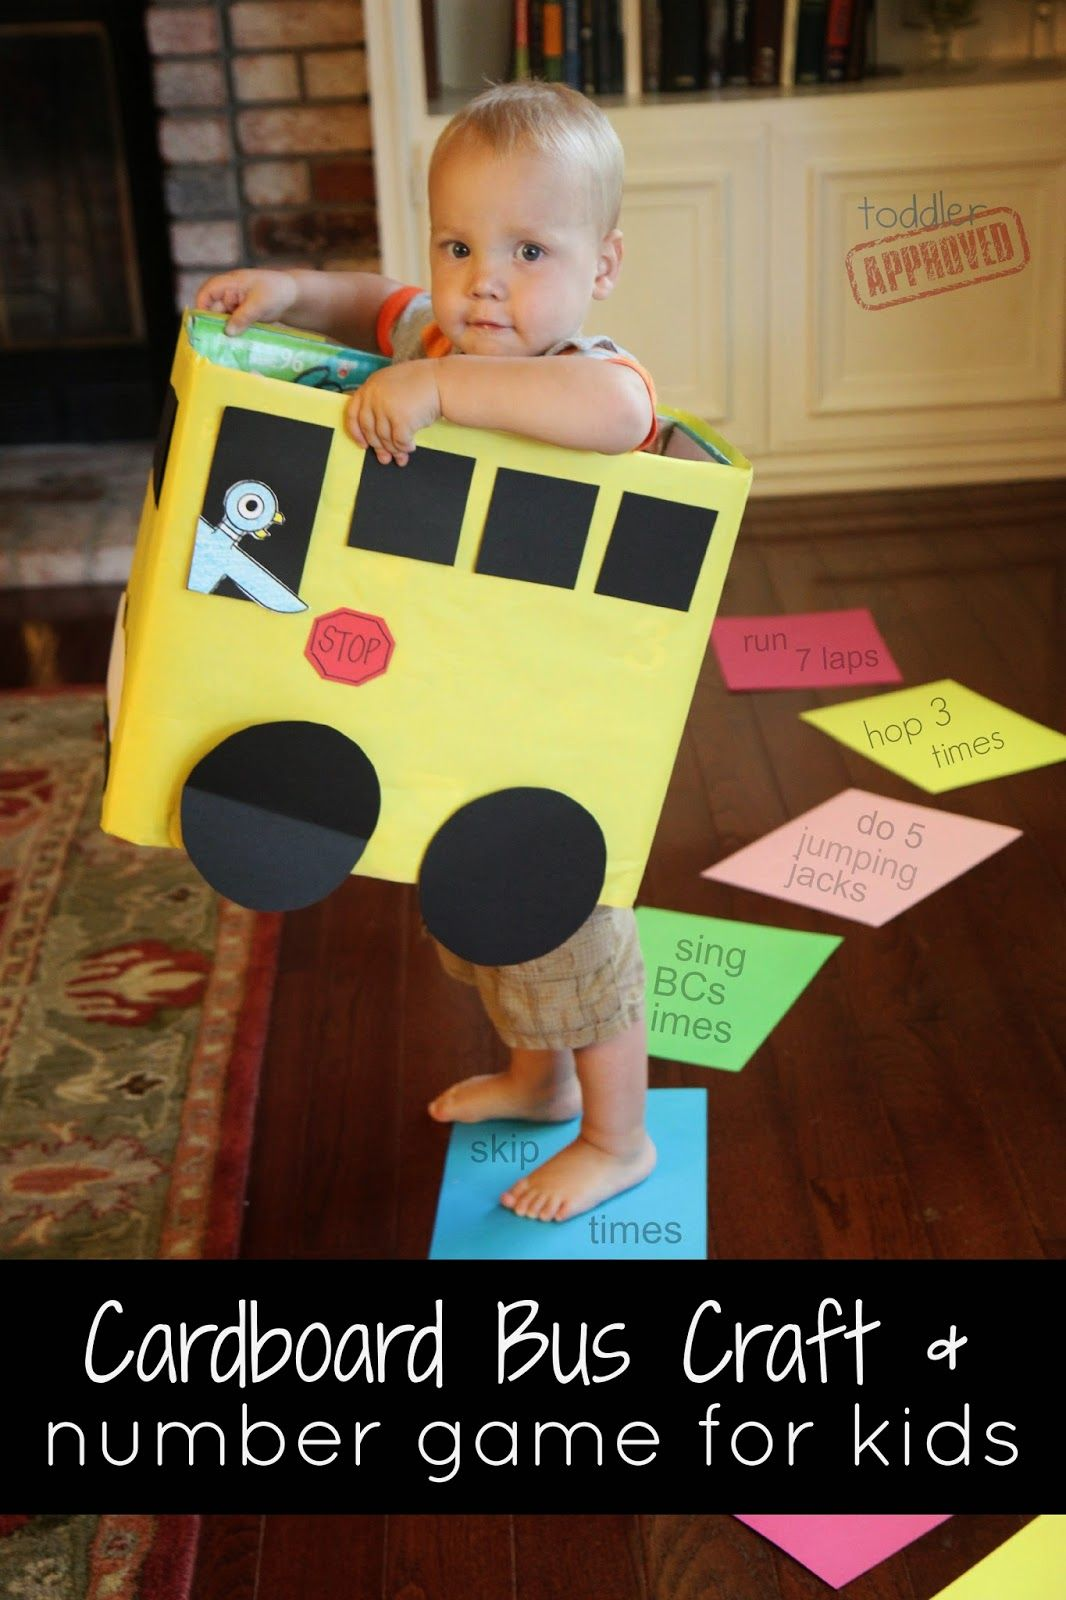 Cardboard Box Bus Craft Amp Number Game For Kids Mo Willems Virtual Book Club For Kids